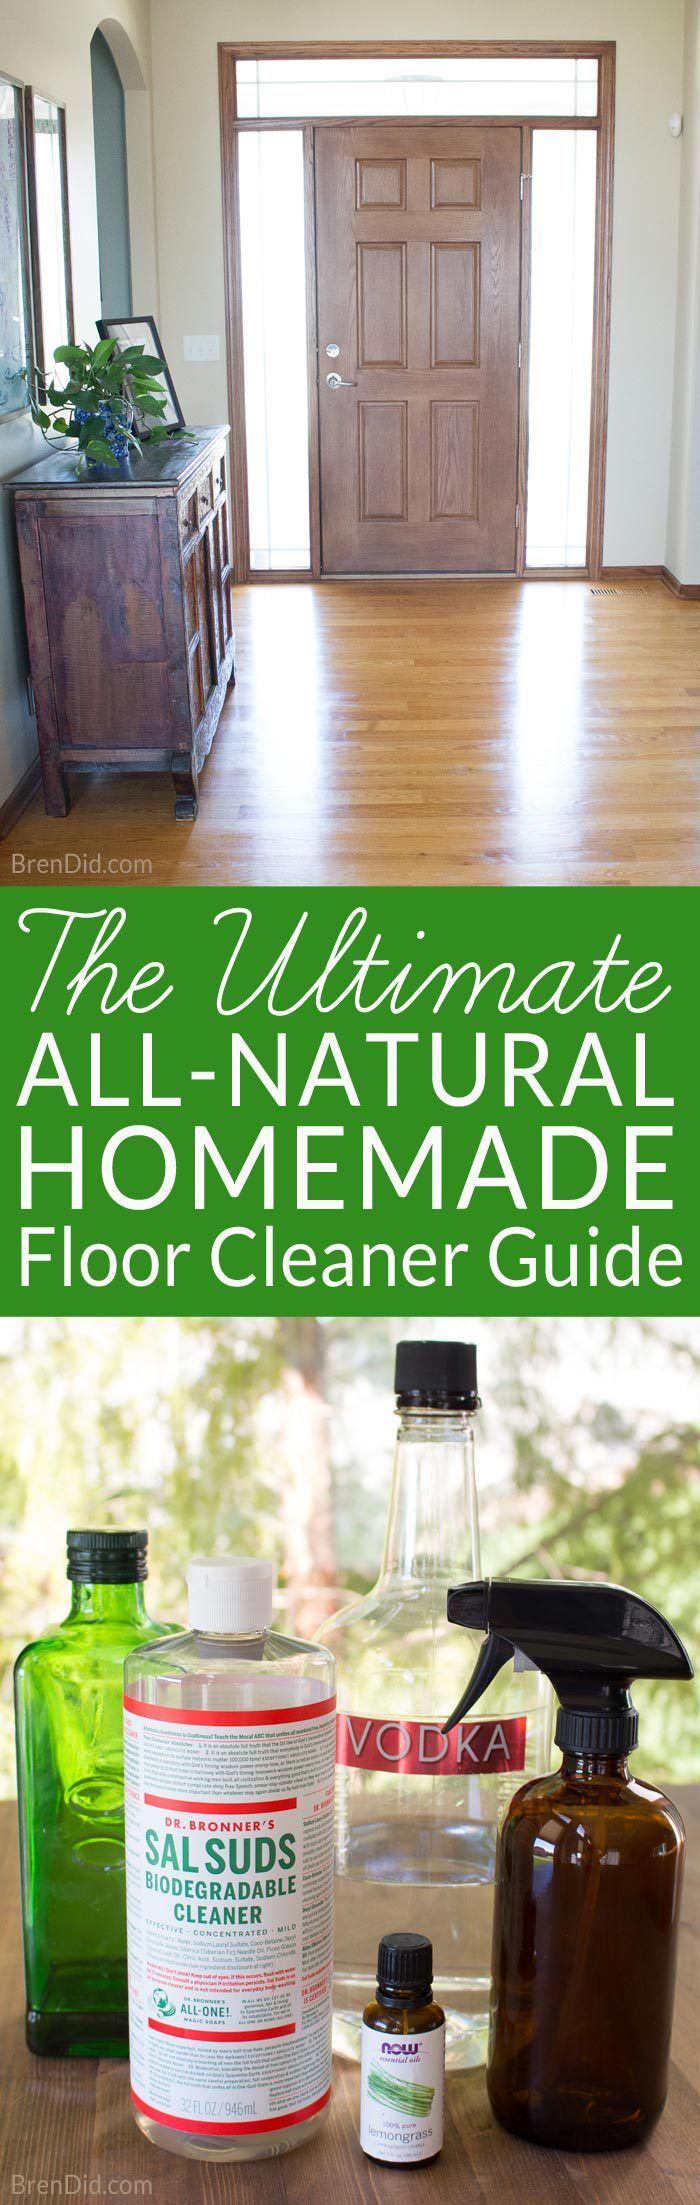 The ultimate all natural homemade floor cleaner guide natural the ultimate all natural homemade floor cleaner guide dailygadgetfo Image collections